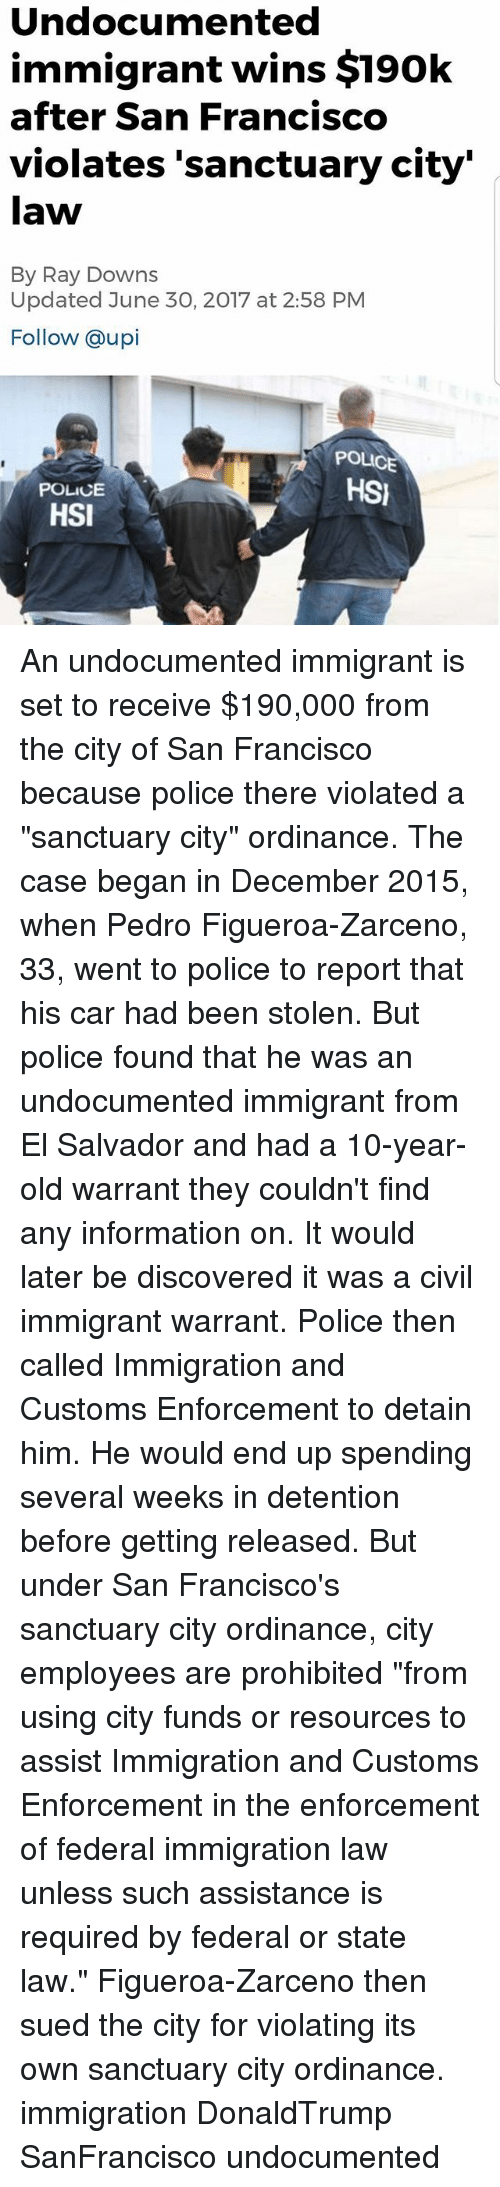 """Memes, Police, and Immigration: Undocumented  immigrant wins $190k  after San Francisco  violates 'sanctuary city'  law  By Ray Downs  Updated June 30, 2017 at 2:58 PM  Follow @upi  POLICE  HSI  POLICE  HSI An undocumented immigrant is set to receive $190,000 from the city of San Francisco because police there violated a """"sanctuary city"""" ordinance. The case began in December 2015, when Pedro Figueroa-Zarceno, 33, went to police to report that his car had been stolen. But police found that he was an undocumented immigrant from El Salvador and had a 10-year-old warrant they couldn't find any information on. It would later be discovered it was a civil immigrant warrant. Police then called Immigration and Customs Enforcement to detain him. He would end up spending several weeks in detention before getting released. But under San Francisco's sanctuary city ordinance, city employees are prohibited """"from using city funds or resources to assist Immigration and Customs Enforcement in the enforcement of federal immigration law unless such assistance is required by federal or state law."""" Figueroa-Zarceno then sued the city for violating its own sanctuary city ordinance. immigration DonaldTrump SanFrancisco undocumented"""